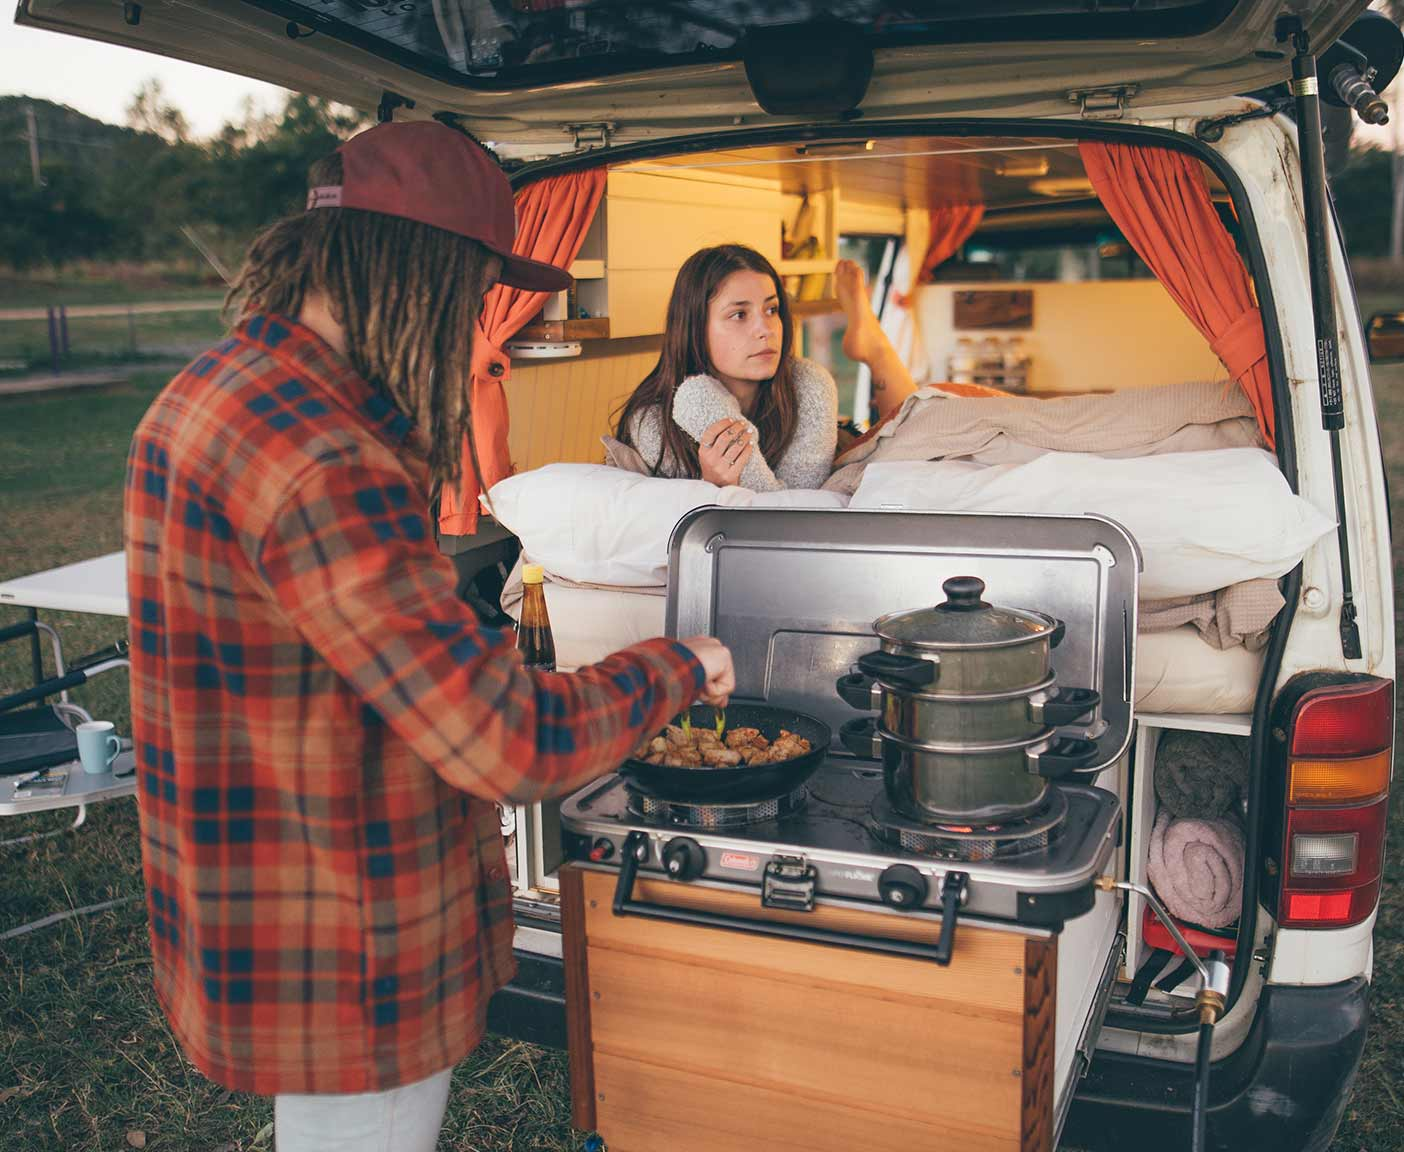 toyota-hiace-selfmade-camper-van-van-conversion-cooking-station-kitchen